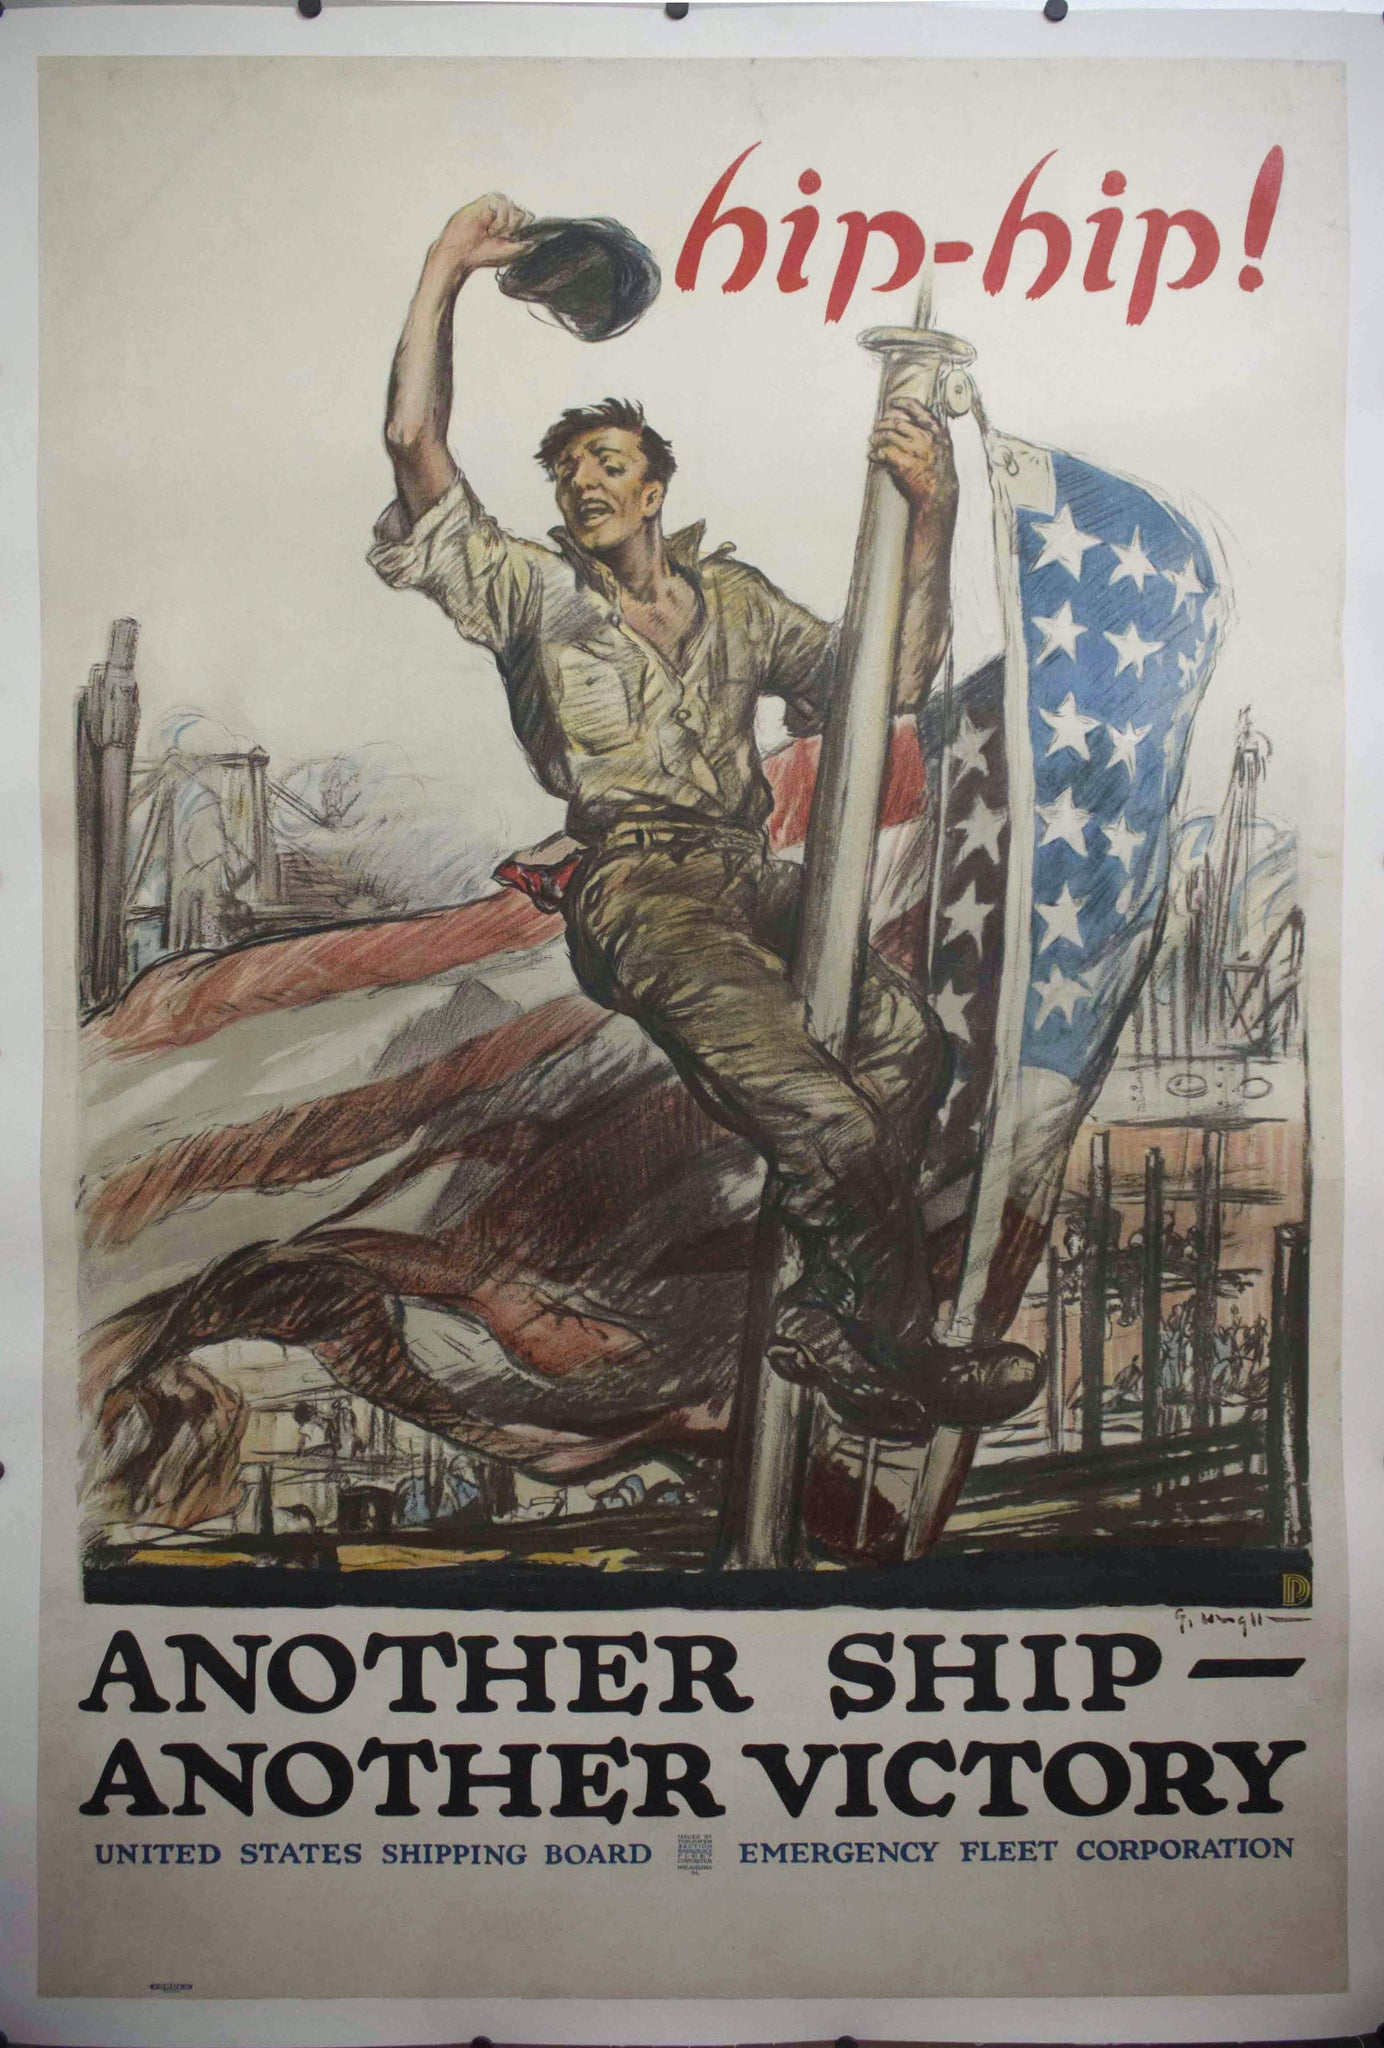 1918 hip-hip! Another Ship - Another Victory | United States Shipping Board